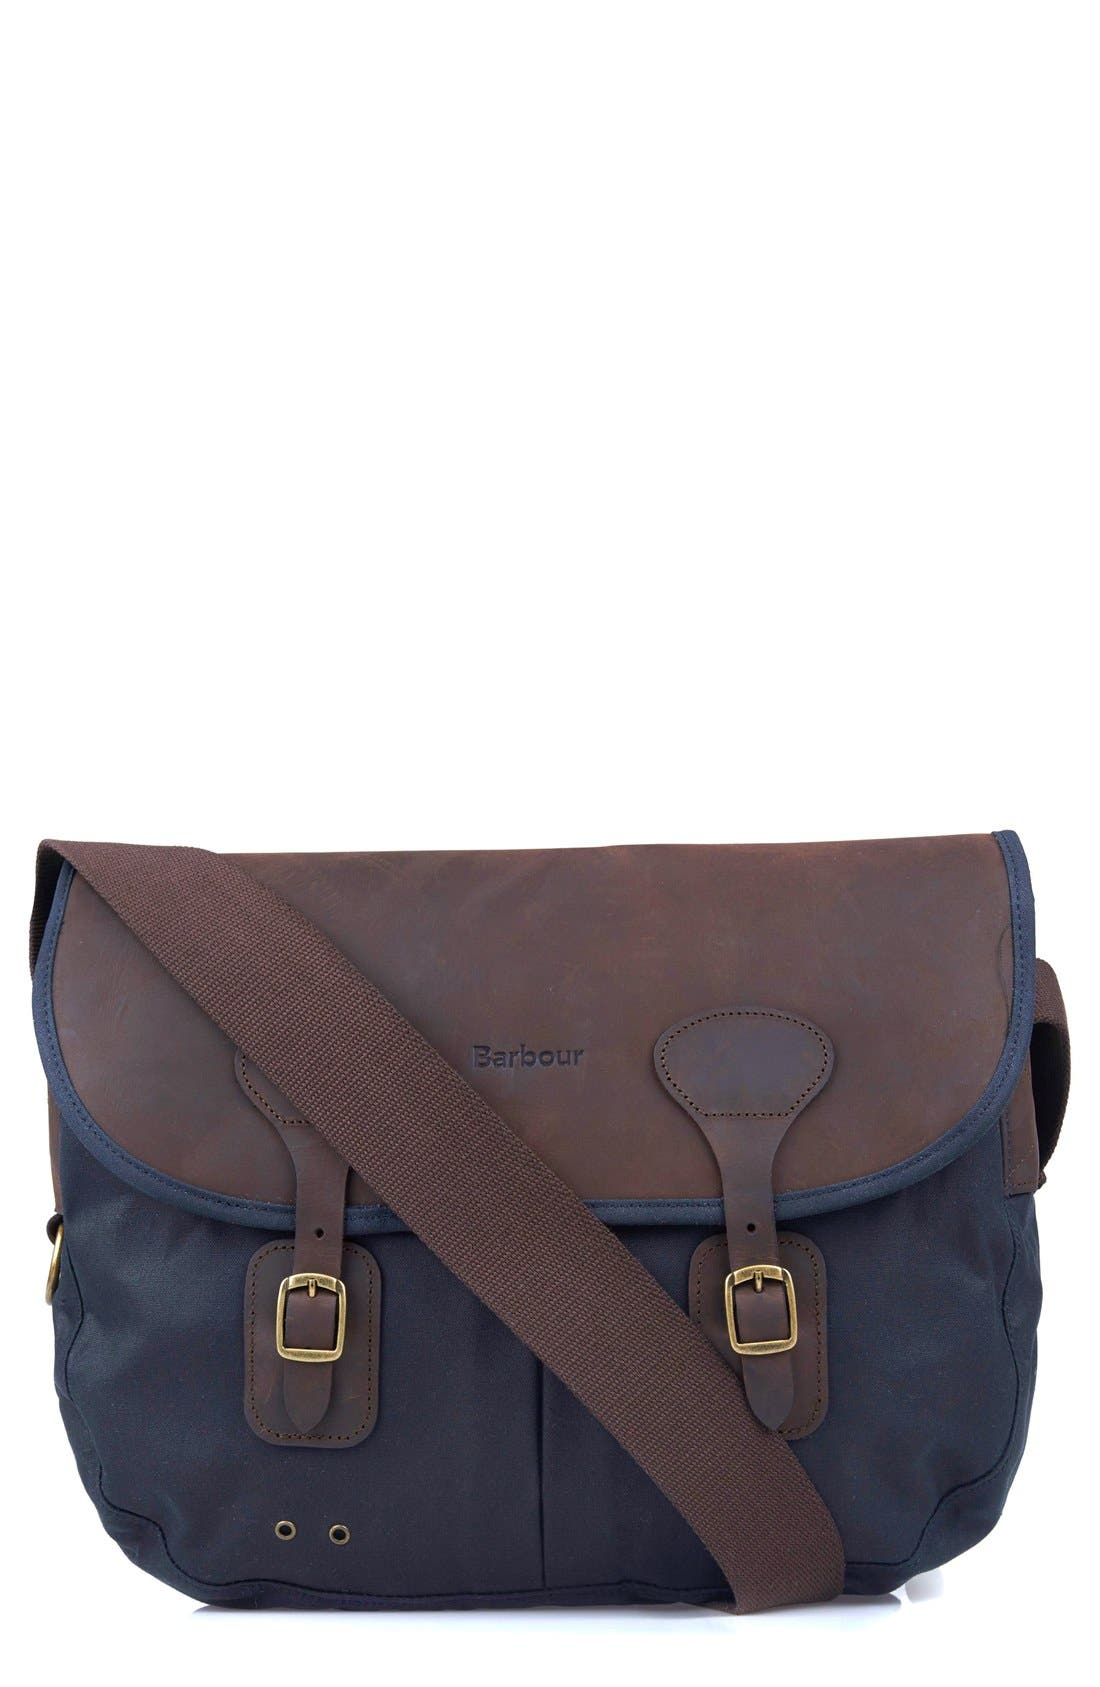 Alternate Image 1 Selected - Barbour Waxed Canvas Tarras Bag